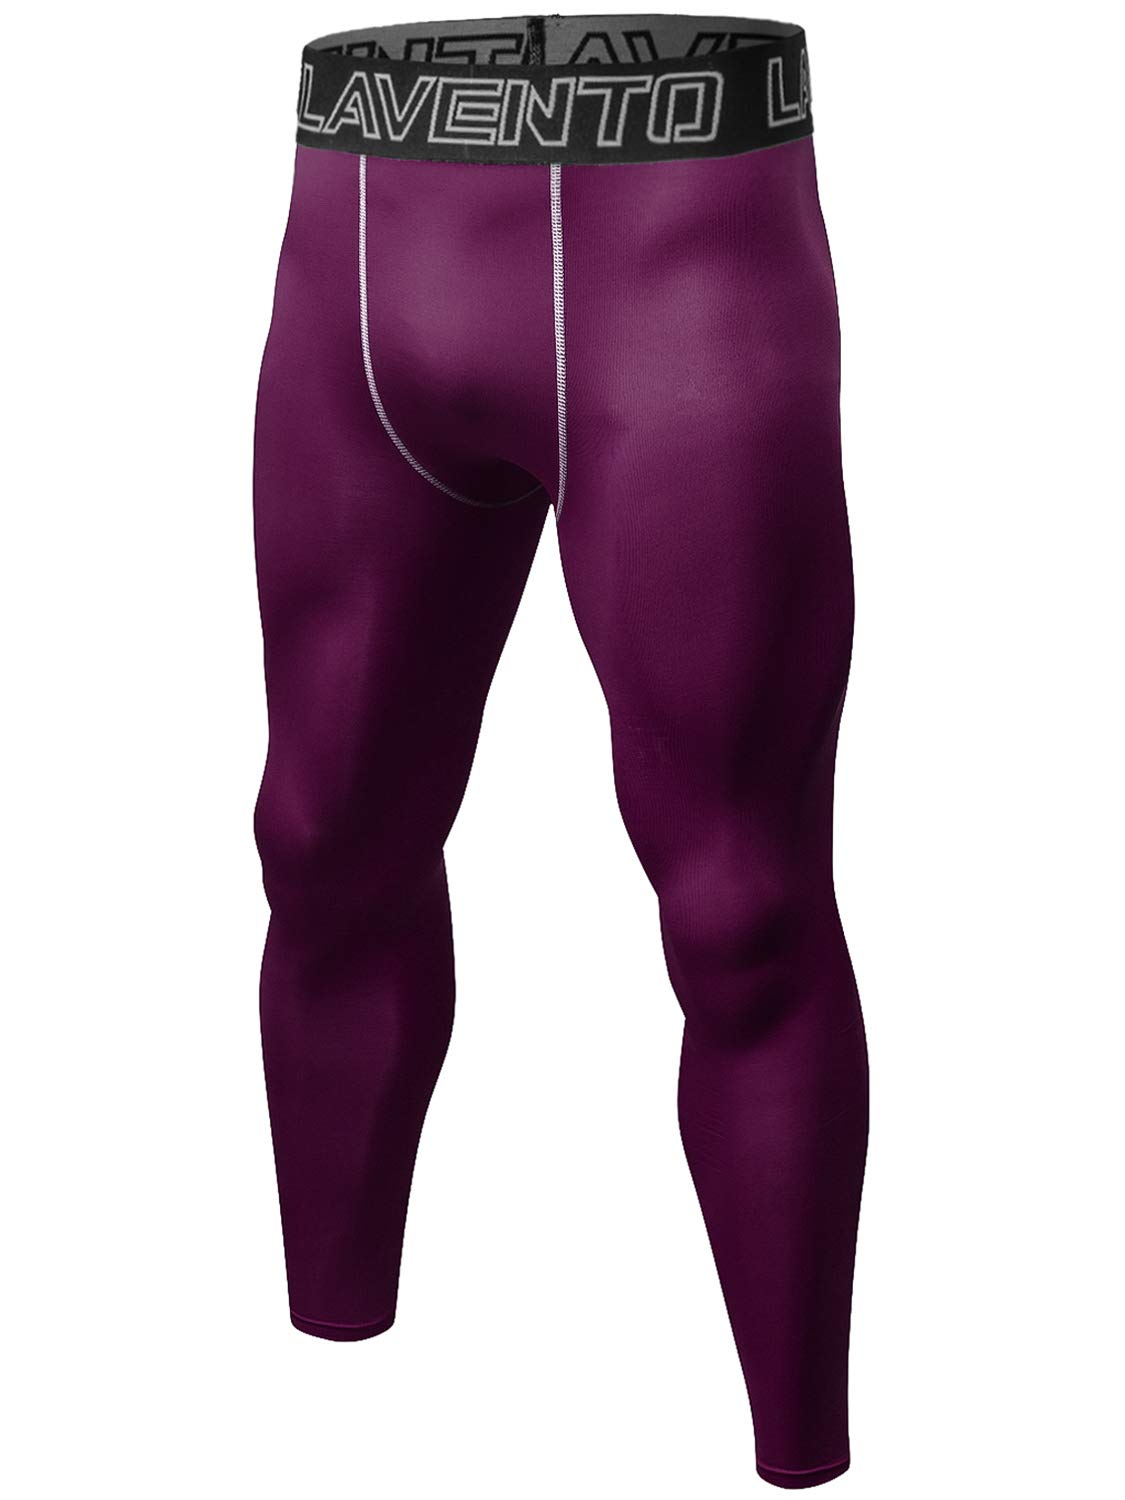 Lavento Men's Compression Pants Cool Dry Workout Tights (1 Pack-L1010 Wine red,Large) by Lavento